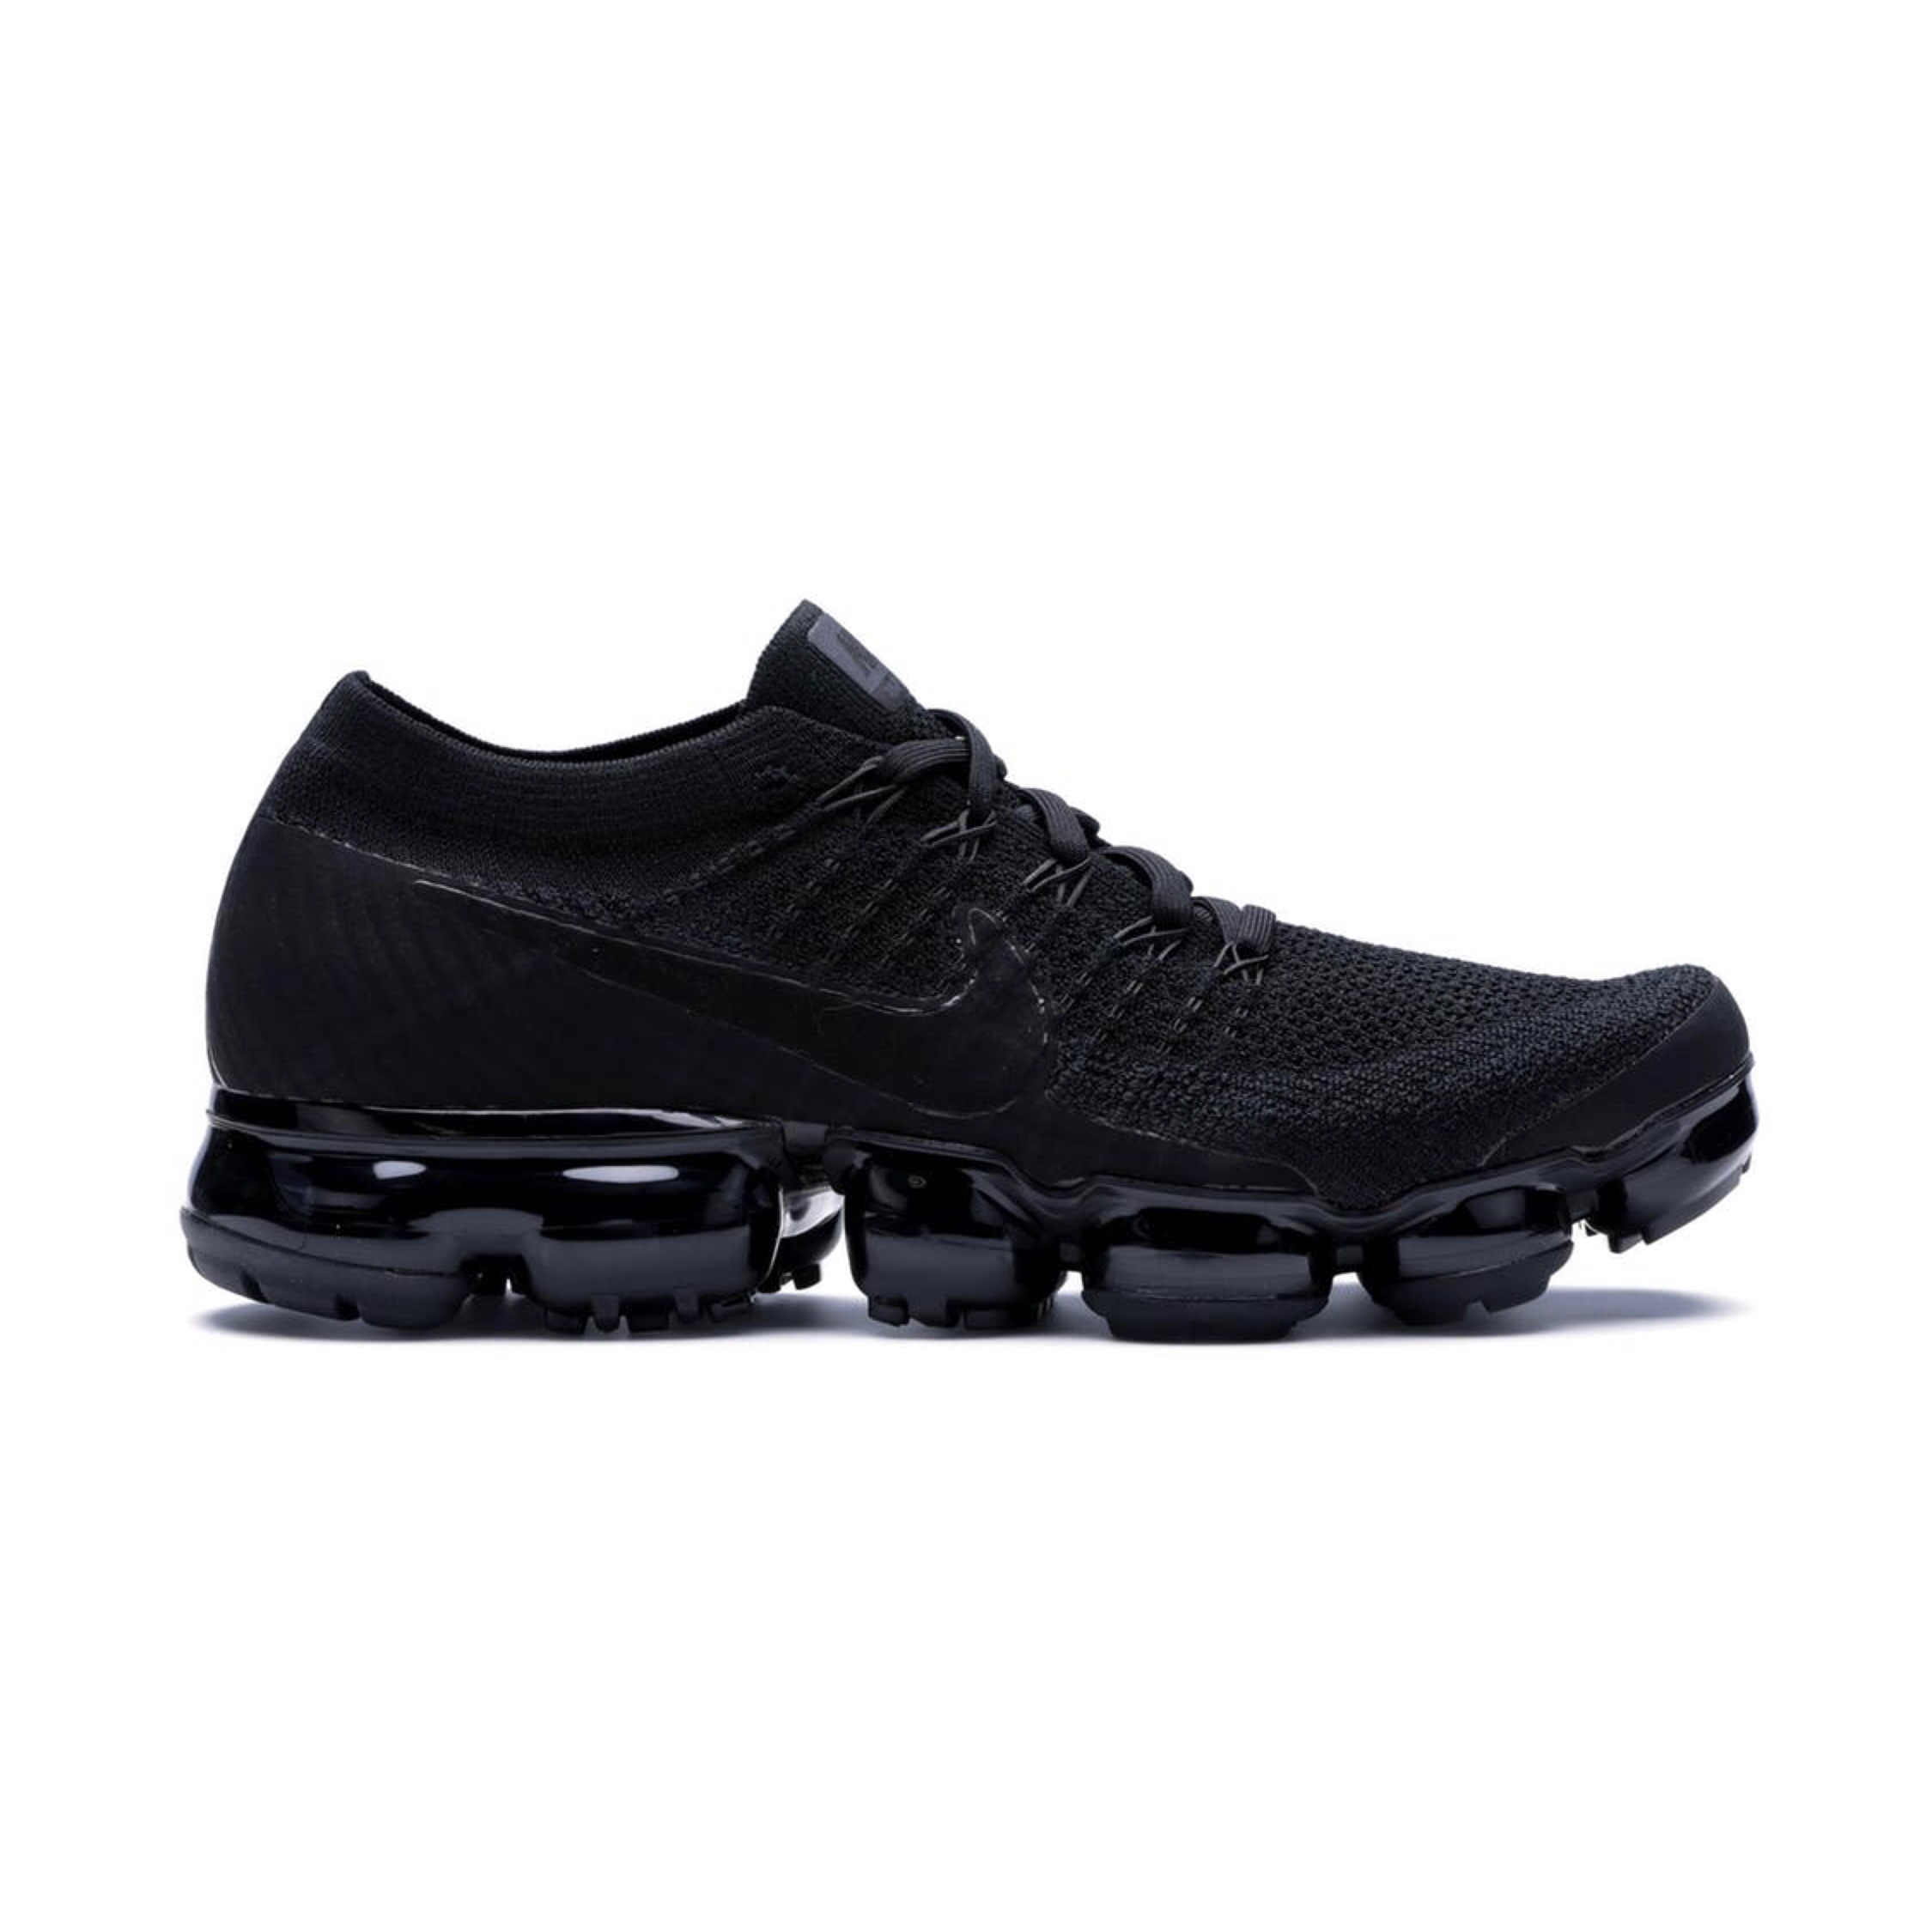 pretty nice 6c51c 27f9c Nike Air Vapormax Flyknit Triple Black 3.0